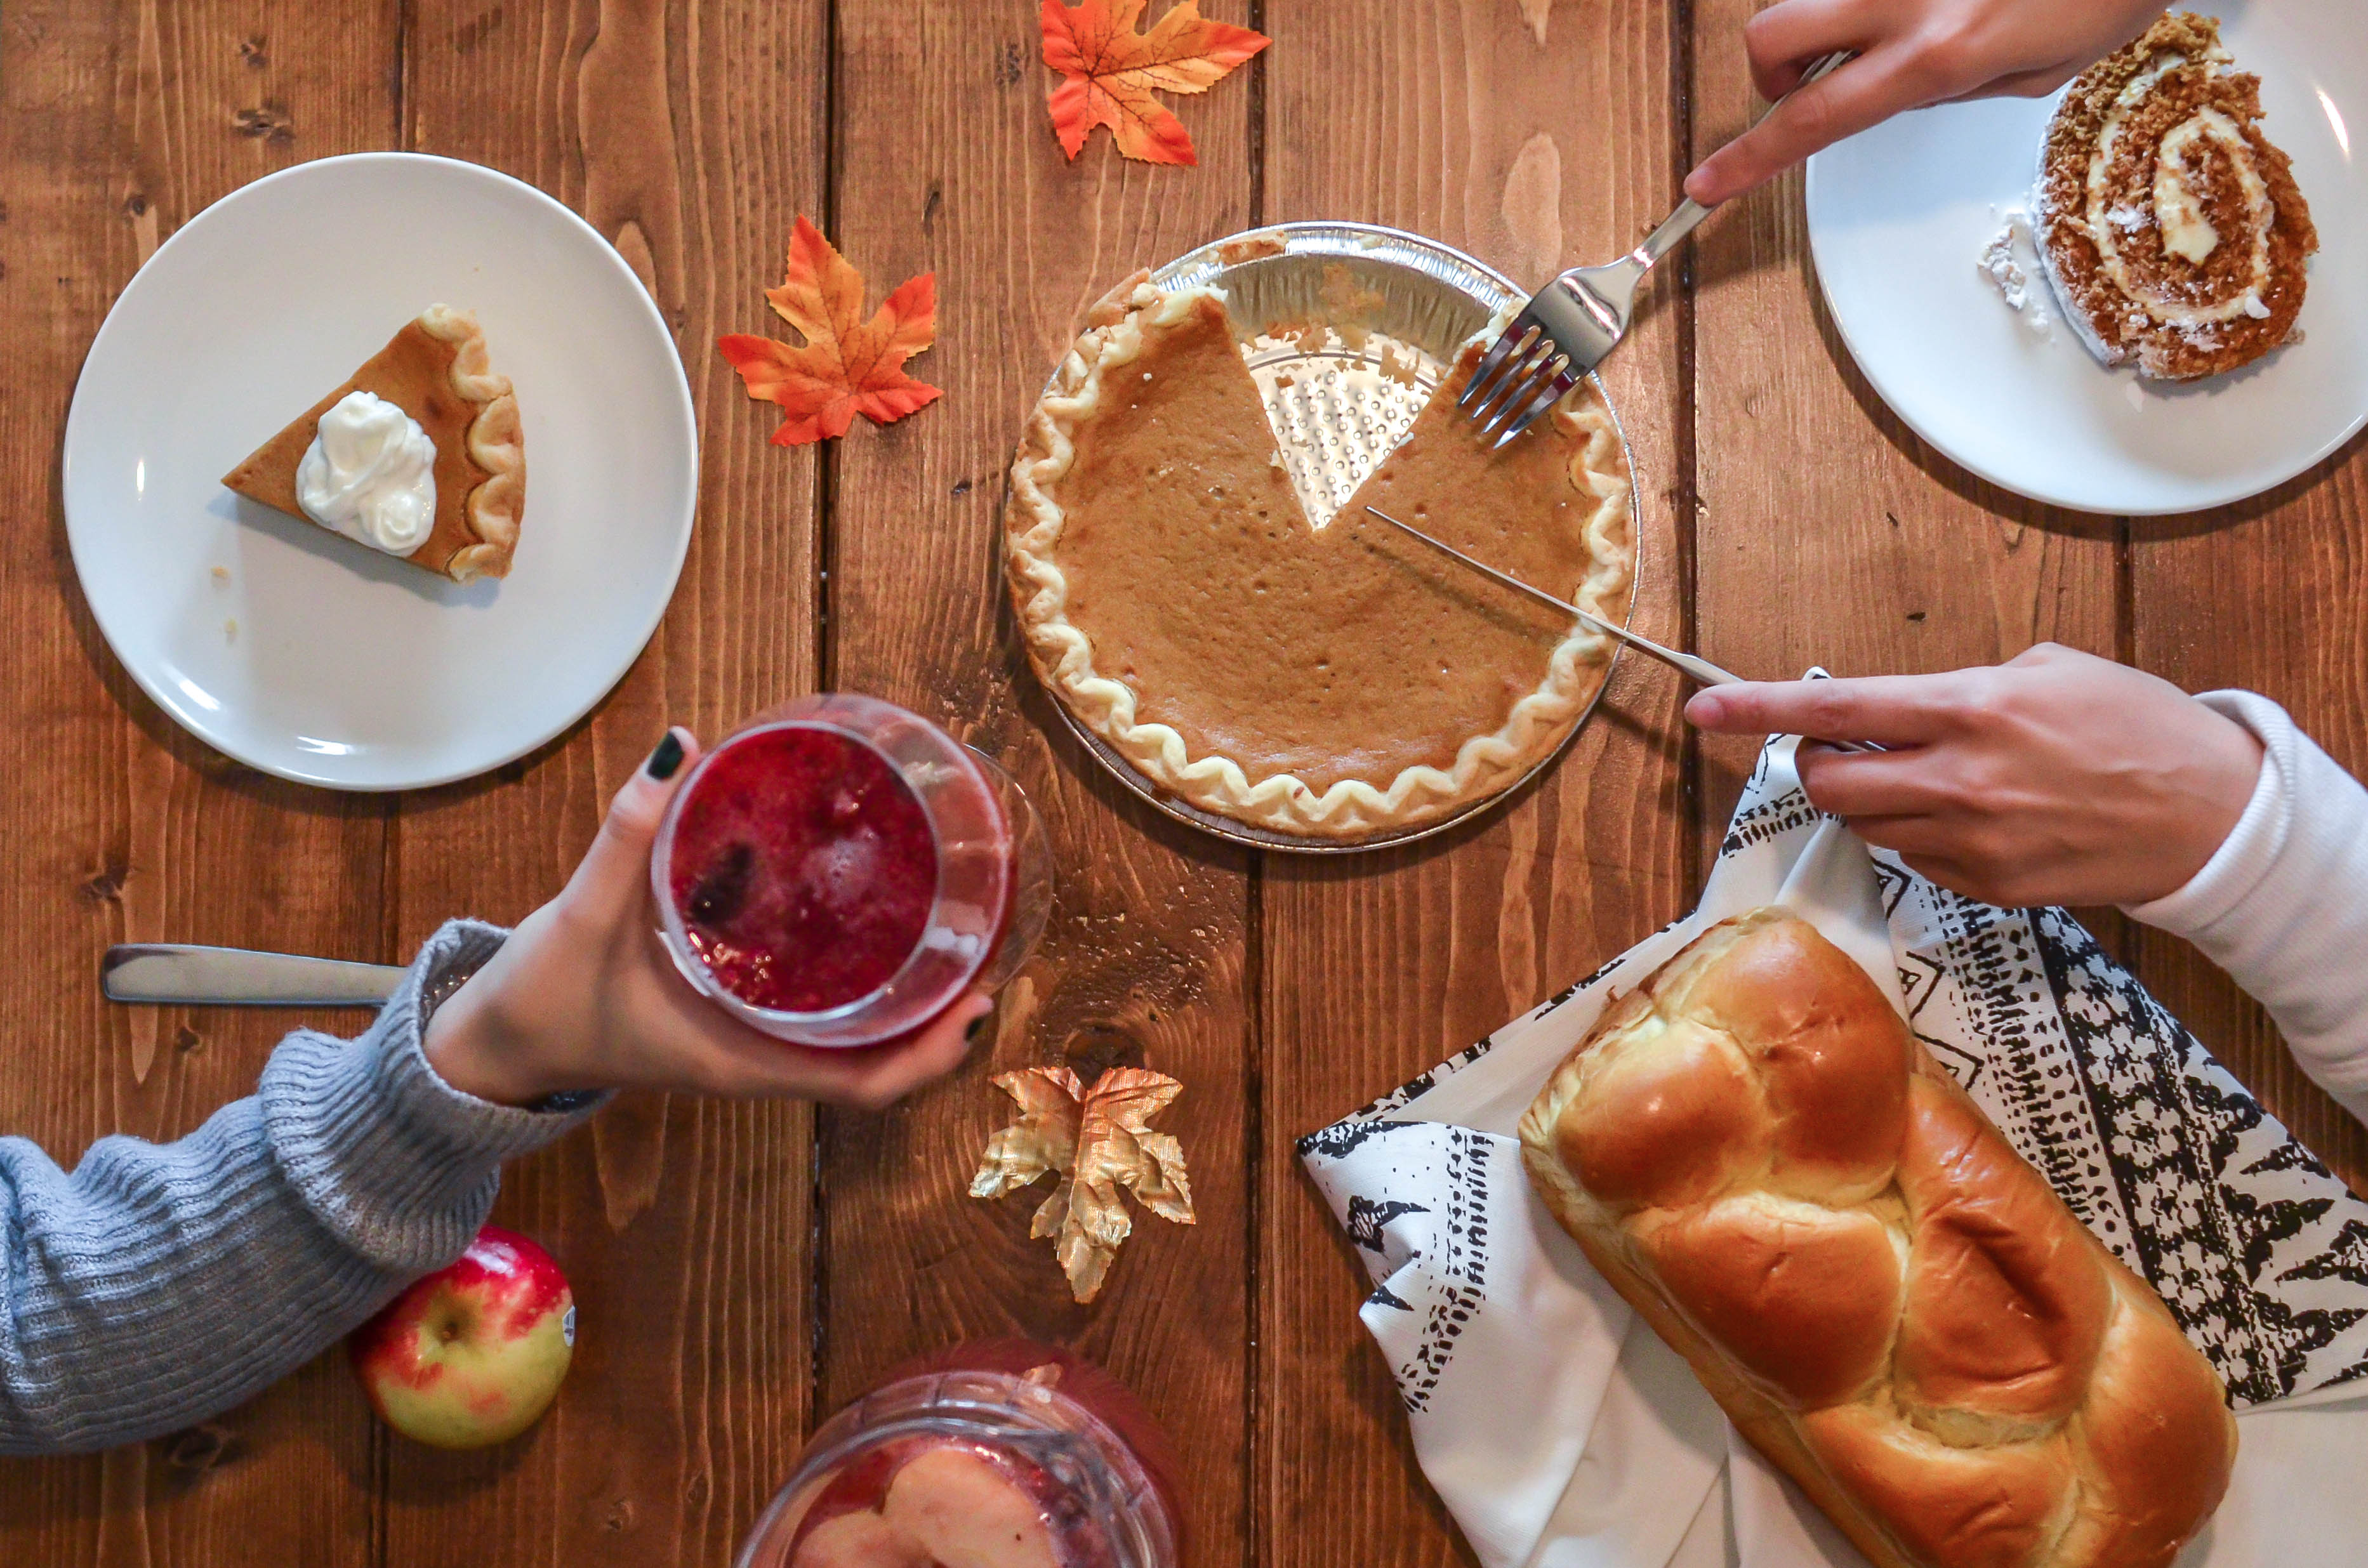 The Best Home Decor for Thanksgiving